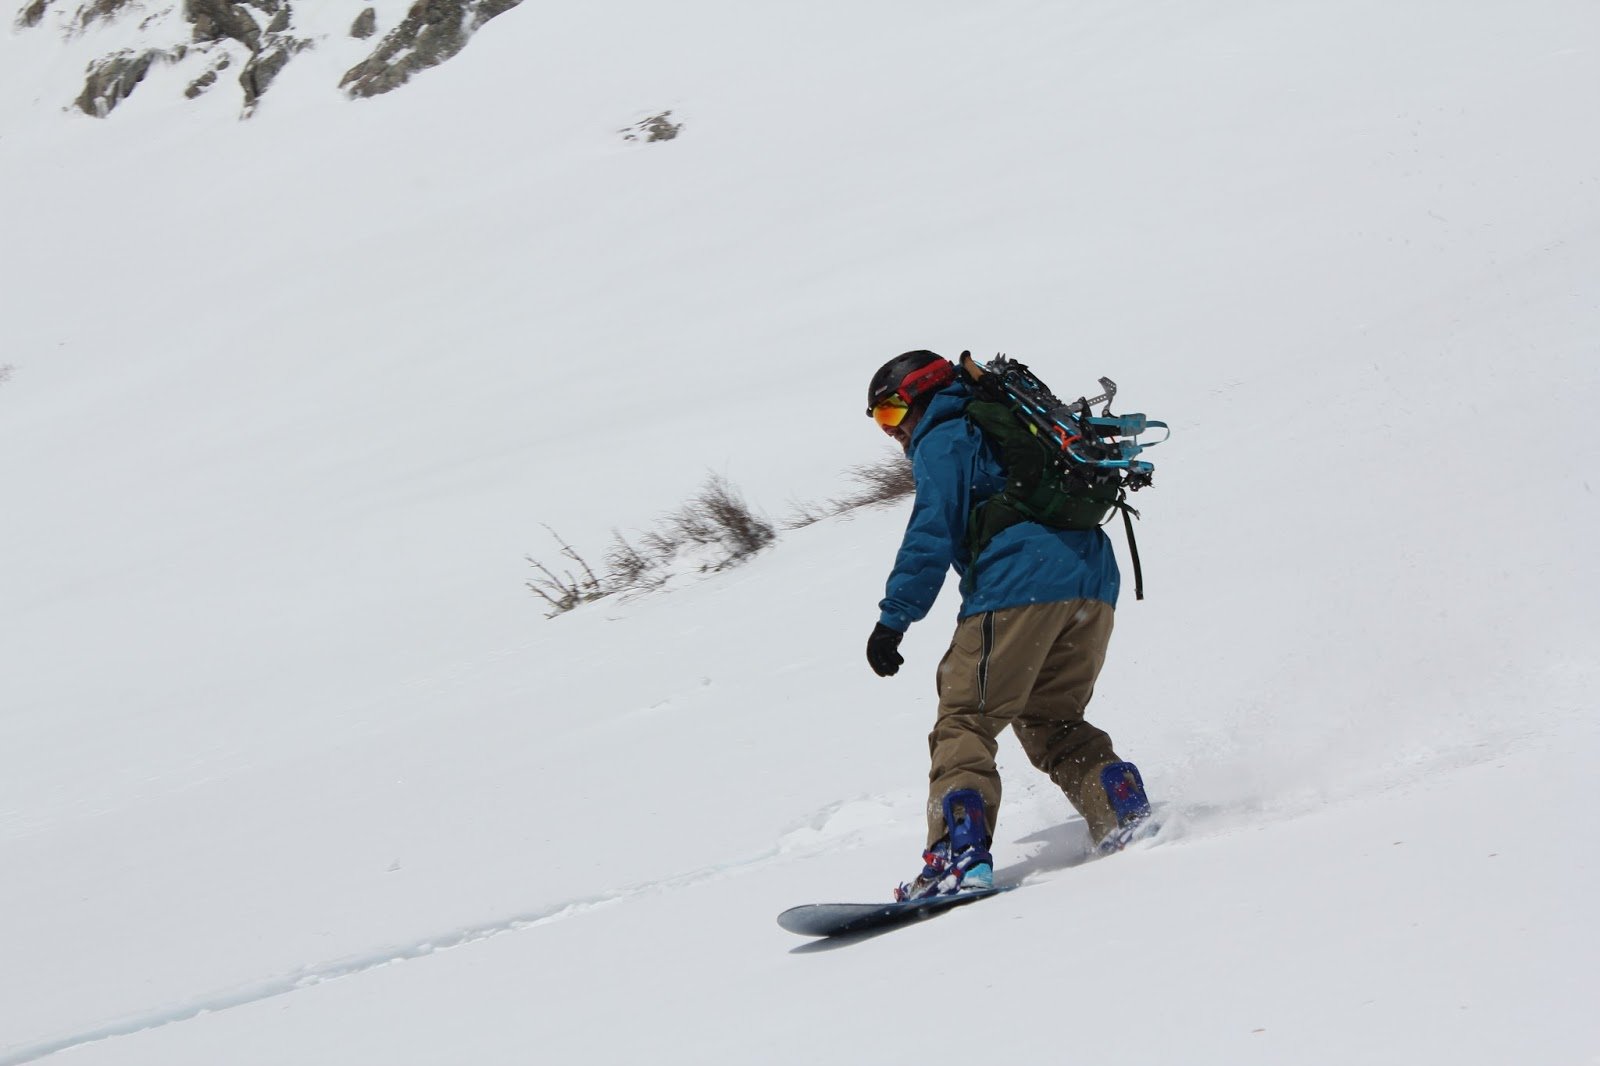 Spring Snow Brings Skiers And Snowboarders To St. Mary's Glacier